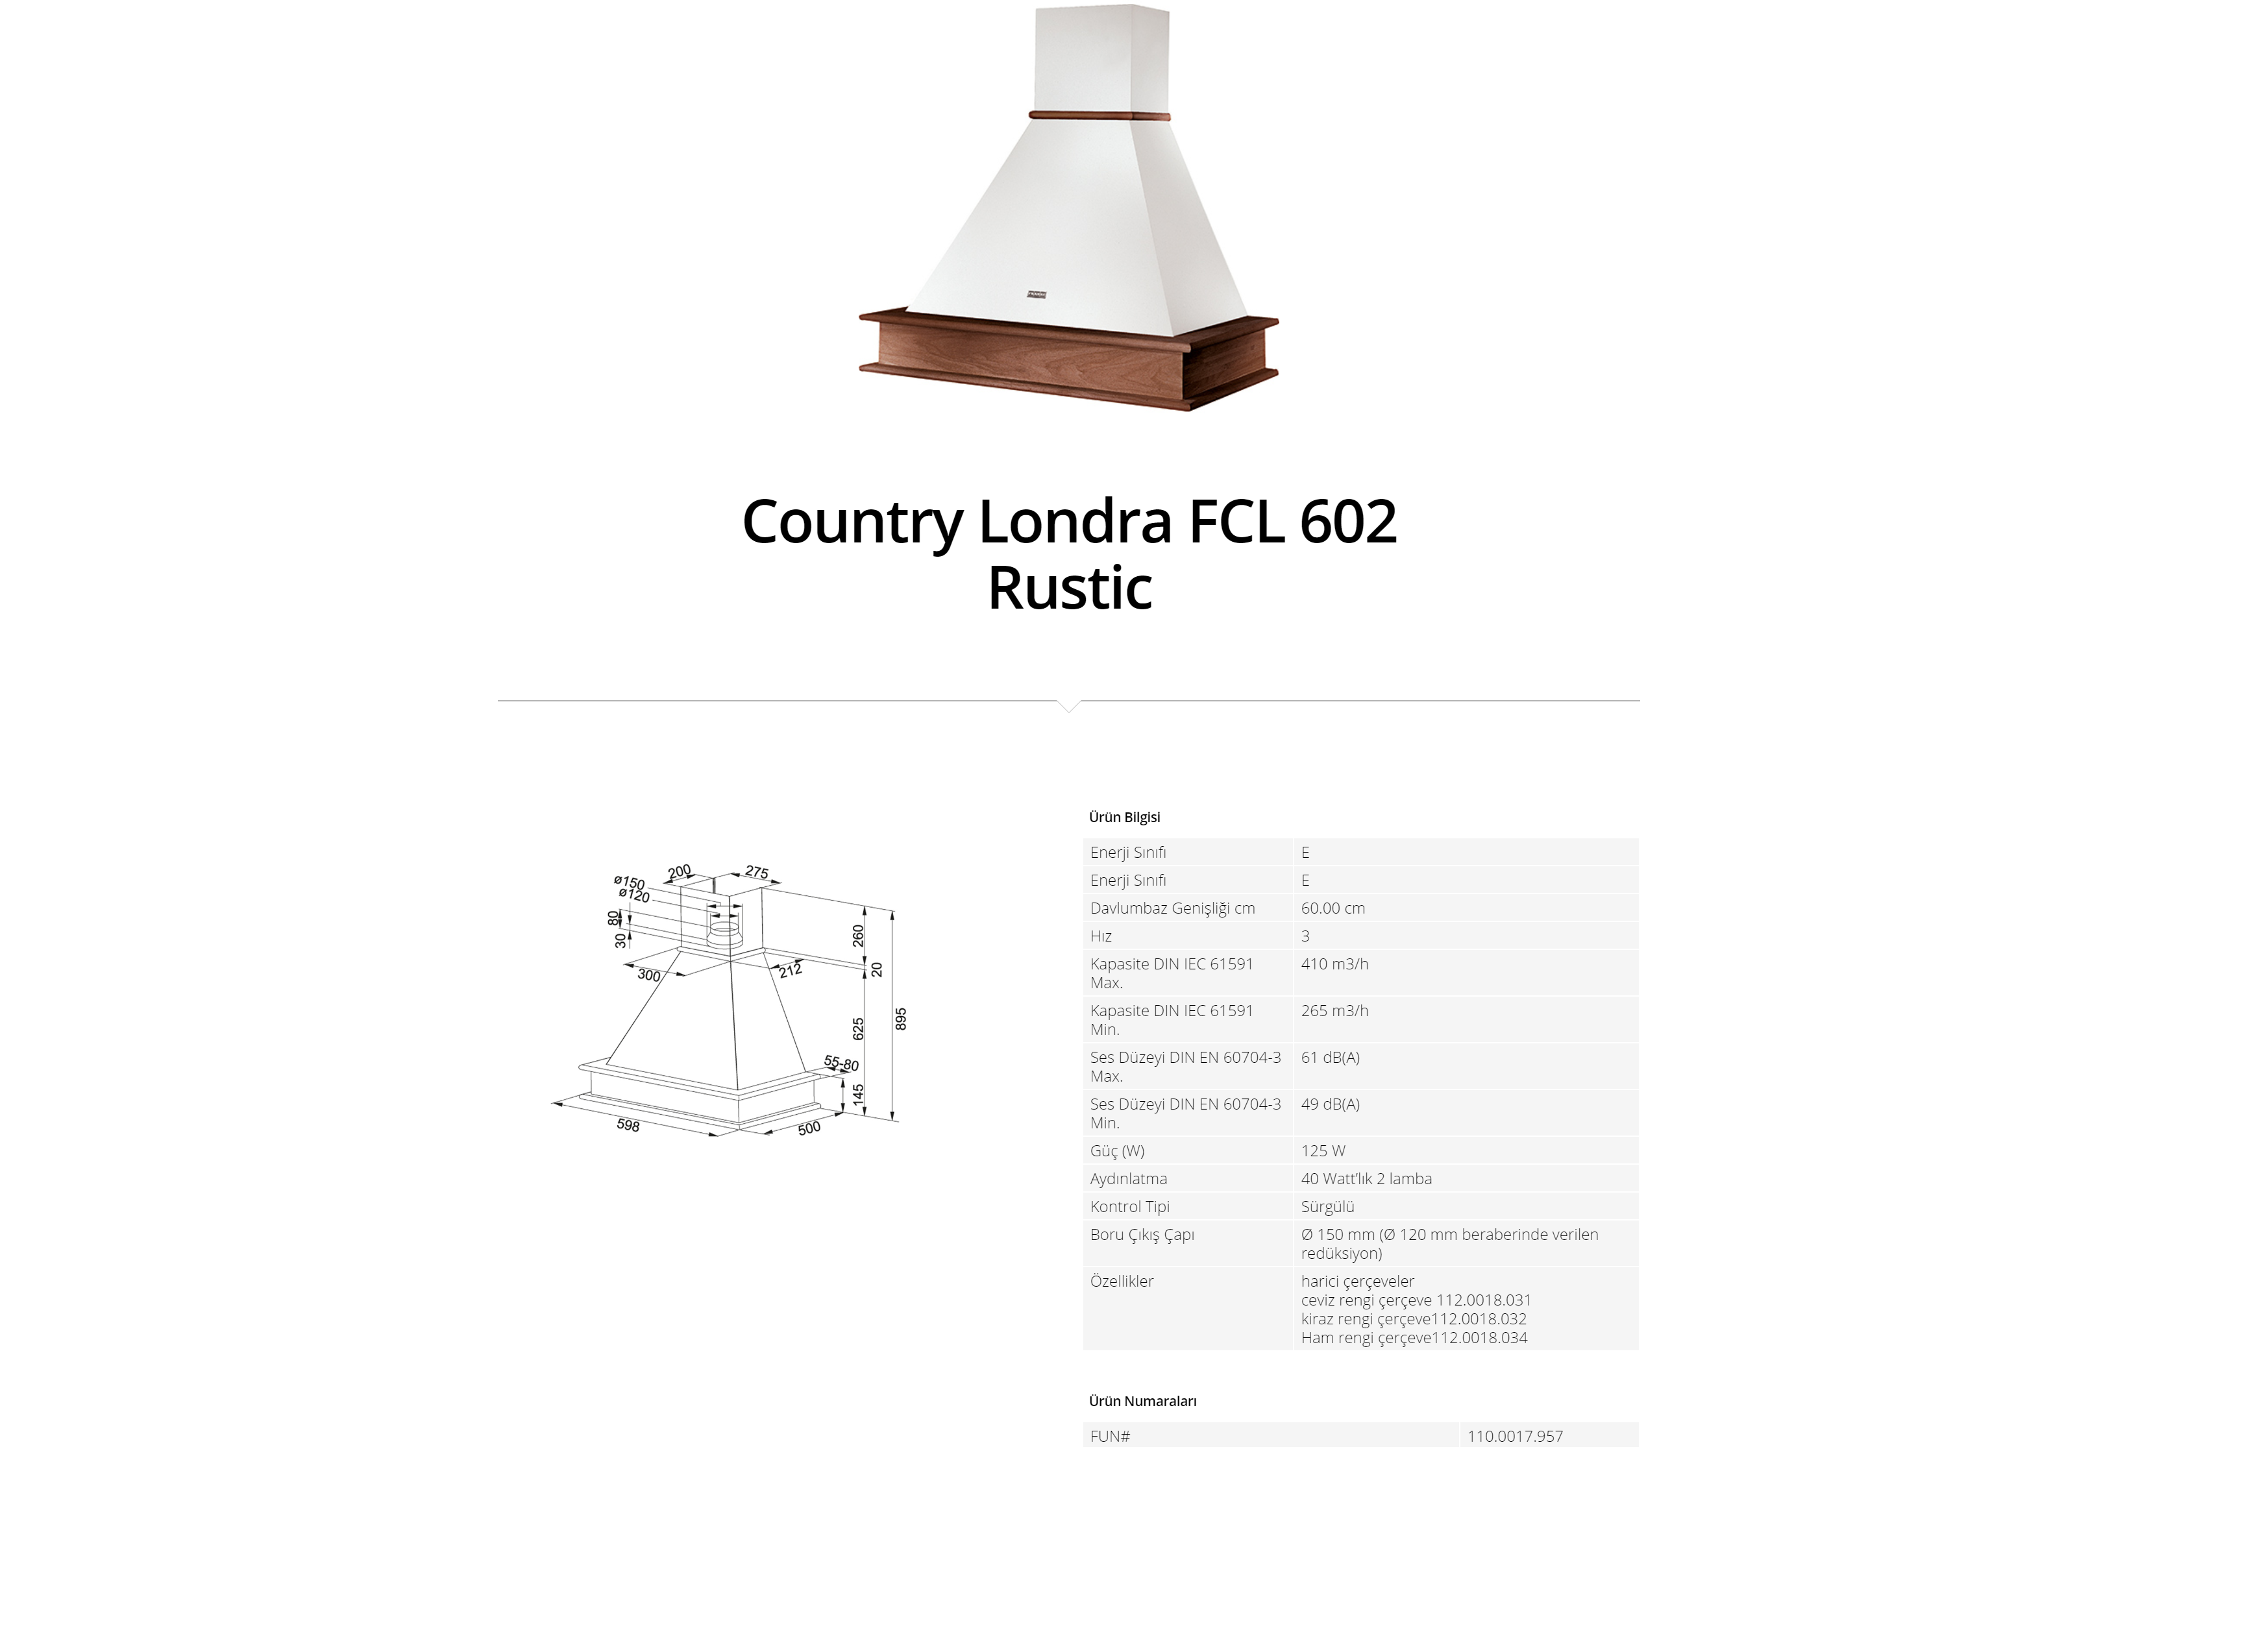 Franke Country Londra FCL 602 Rustic